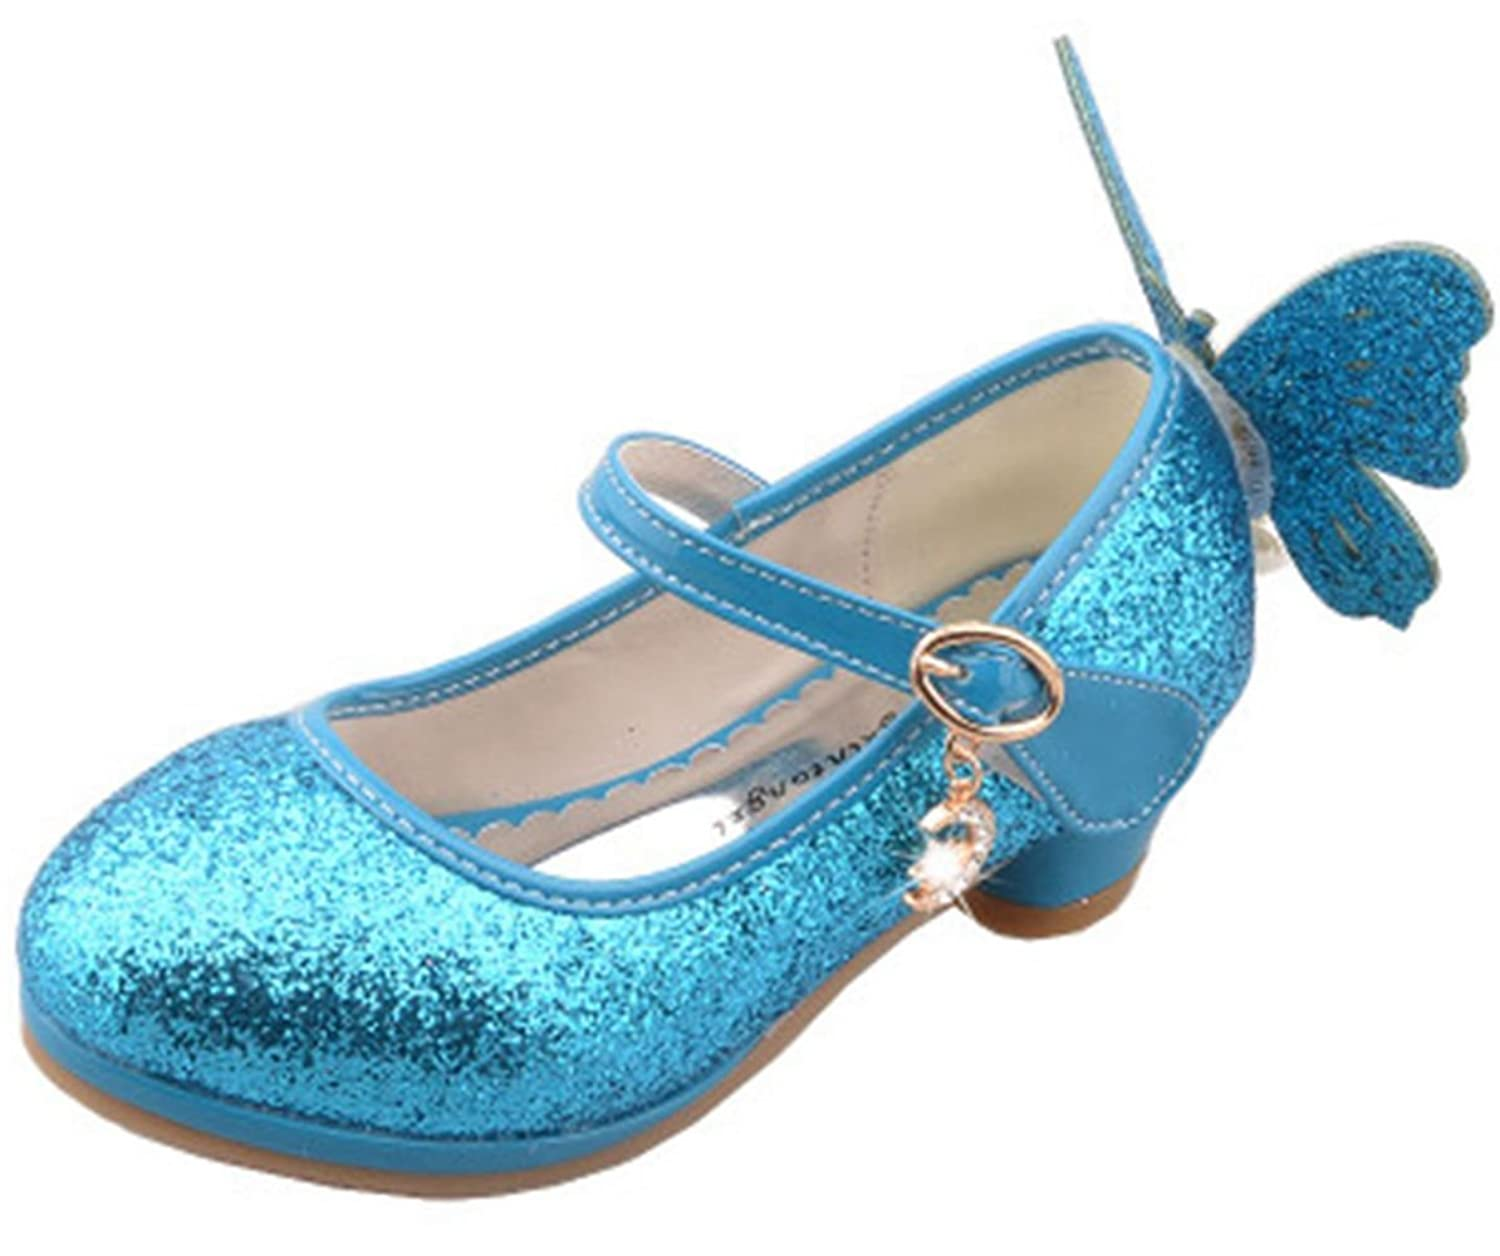 Ychen Girls Kids Children Butterfly Evening Wedding Party Dance Sandals Low  Heel Shoes Mary Jane: Amazon.co.uk: Shoes & Bags